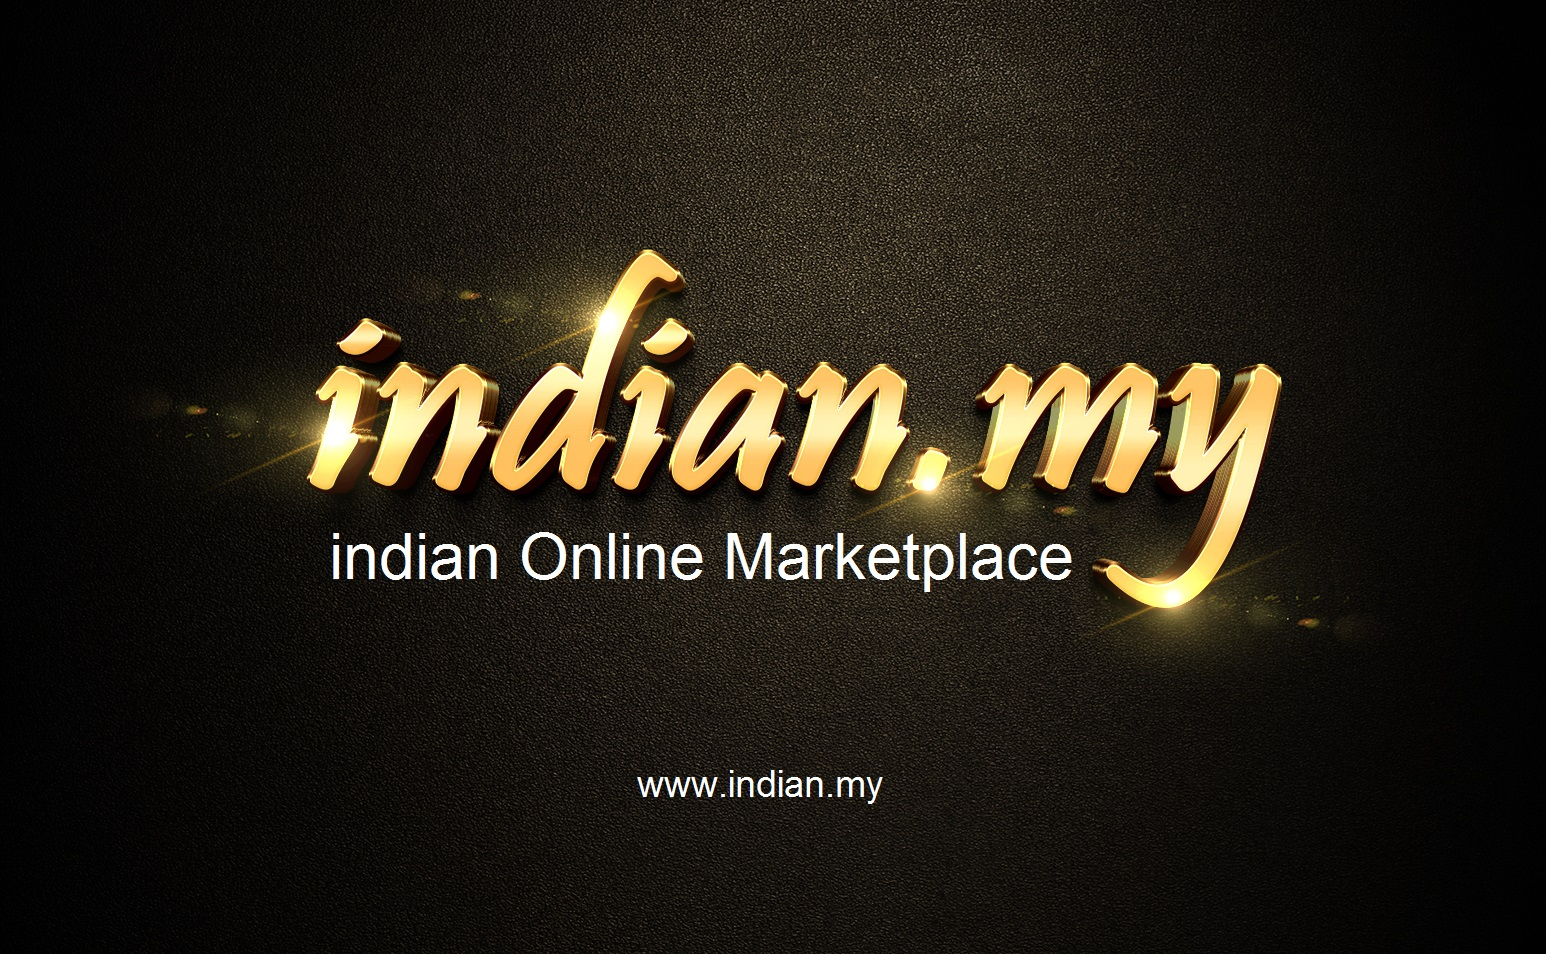 Indian my - Malaysian Indian Online Marketplace & Entreprenuers Network